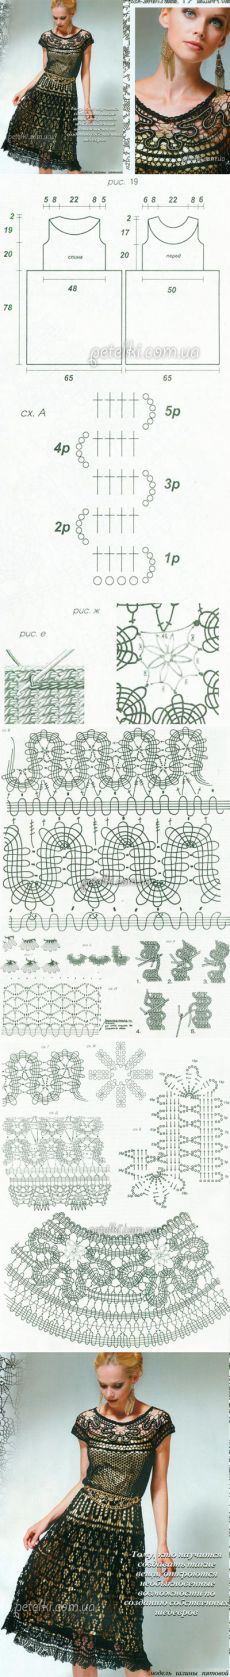 Dress in technology Bruges lace. knitting Schemes description